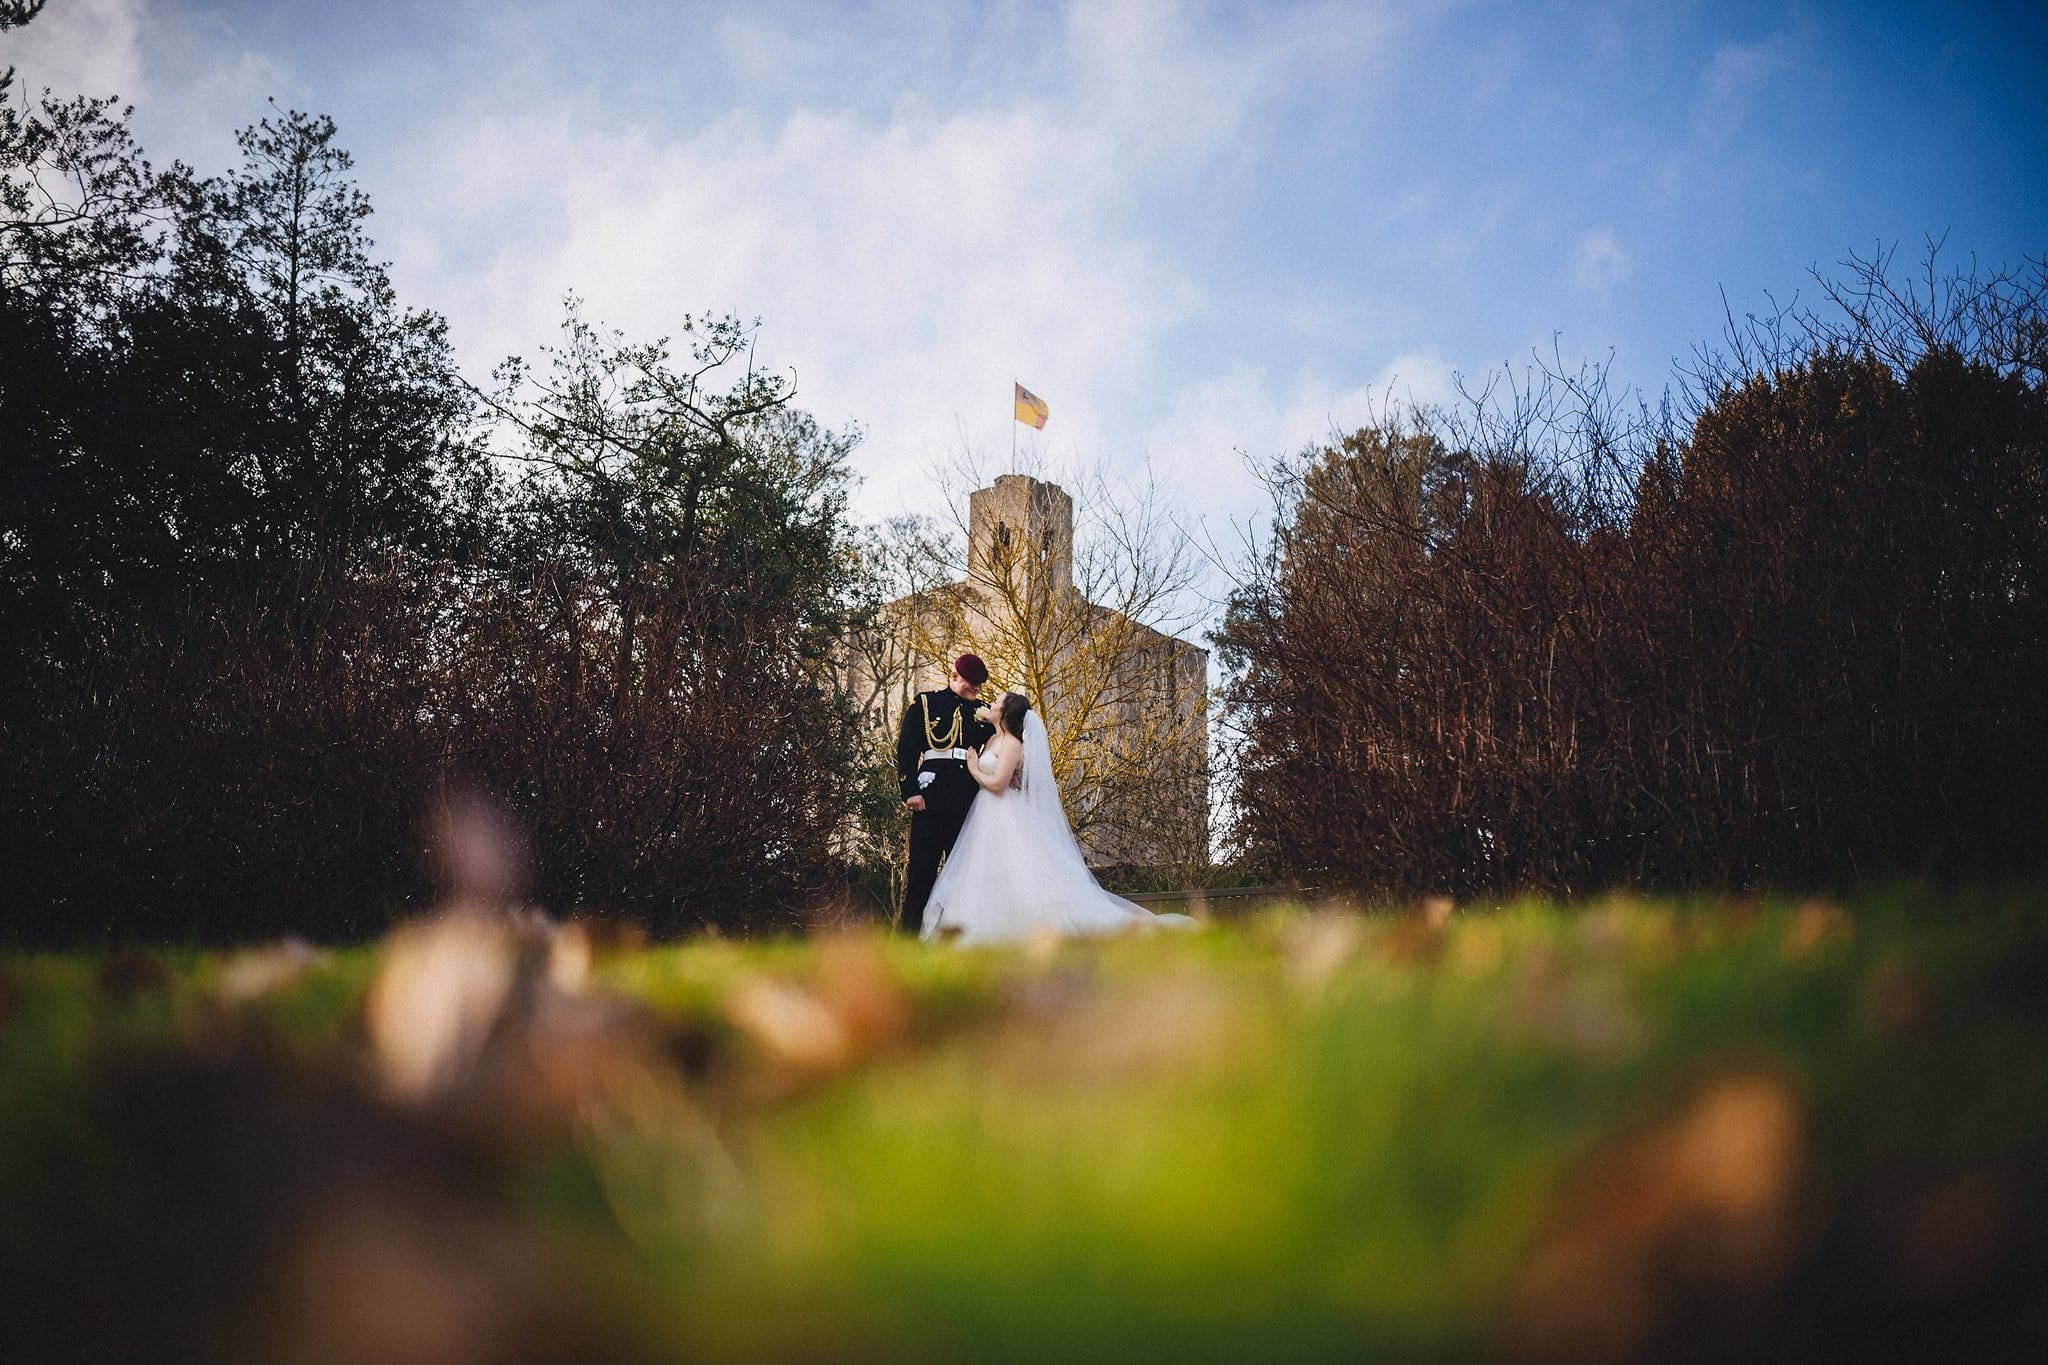 Bride in long veil and groom in military uniform at Hedingham Castle